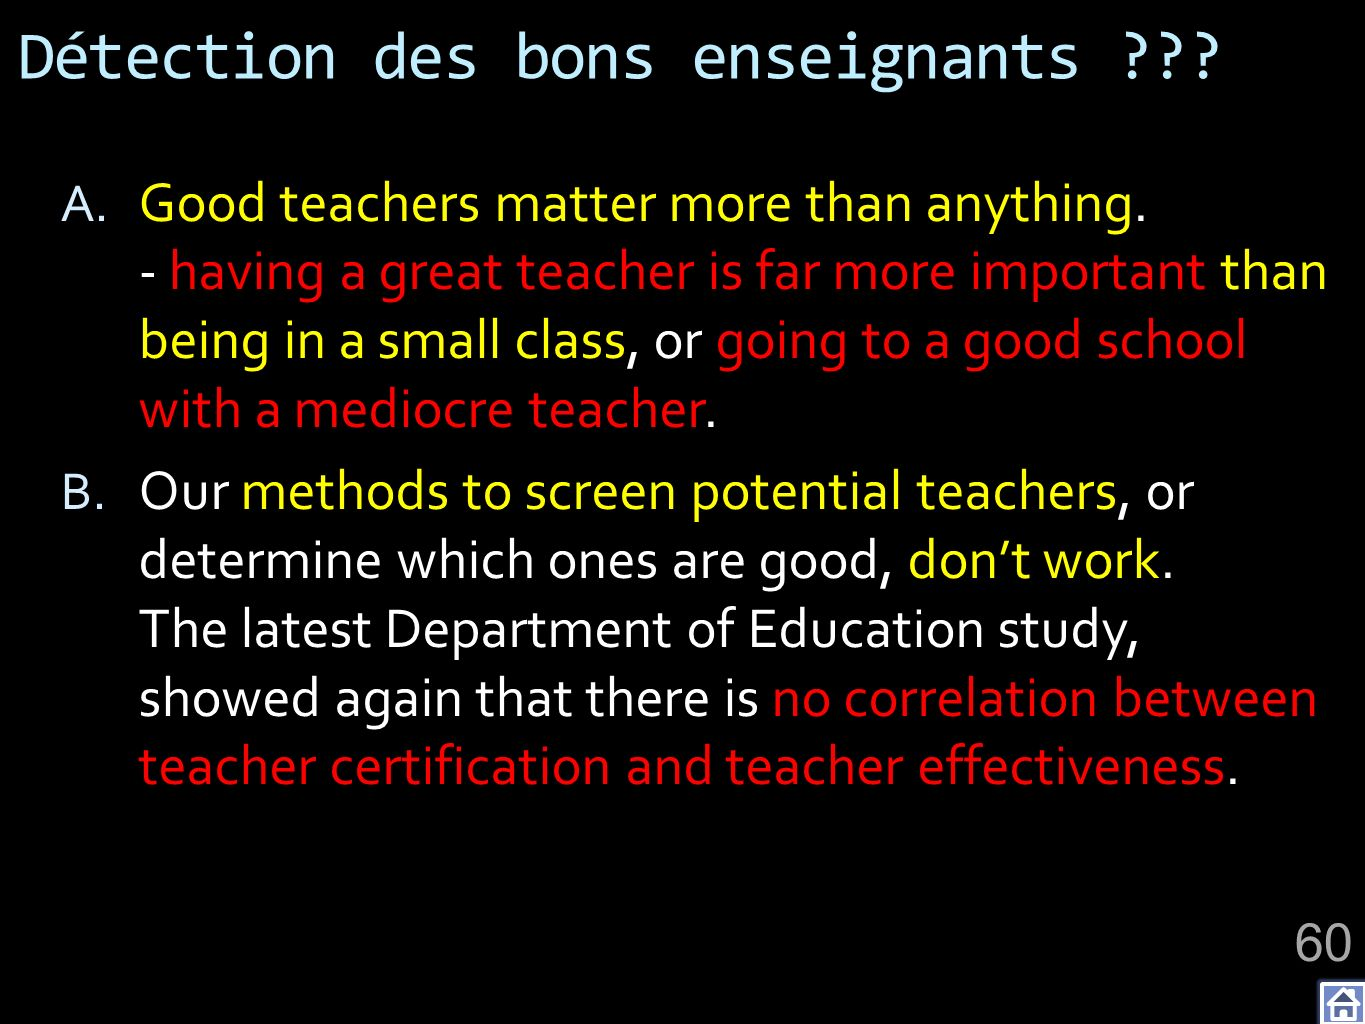 Détection des bons enseignants ??? A. Good teachers matter more than anything. - having a great teacher is far more important than being in a small cl